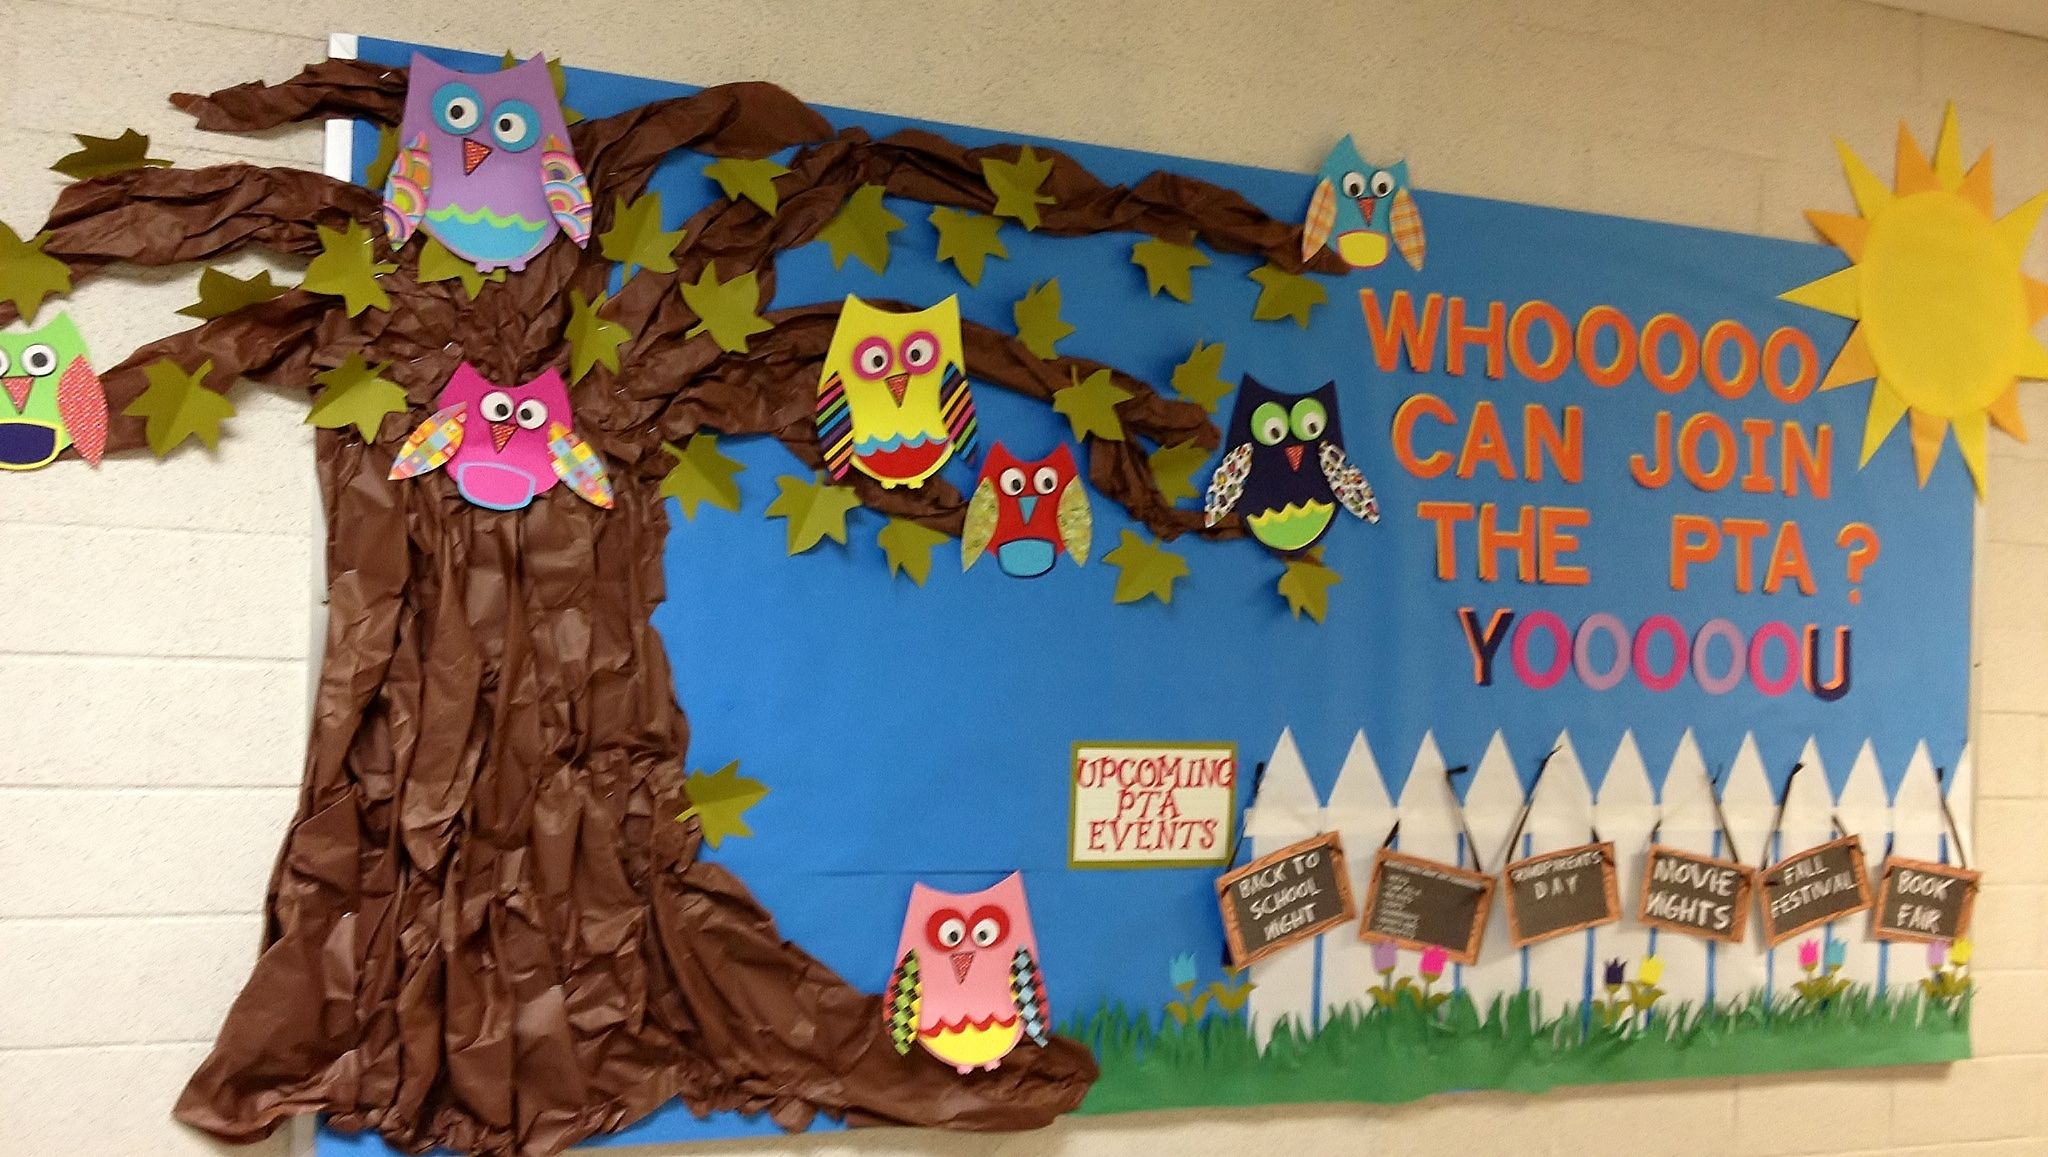 This ended up being the 1st of hopefully many PTA bulletin boards that I did for the KIES PTA.  The kids seemed to really enjoy it and I received tons of compliments from other parents and teachers :) SUCCESS!